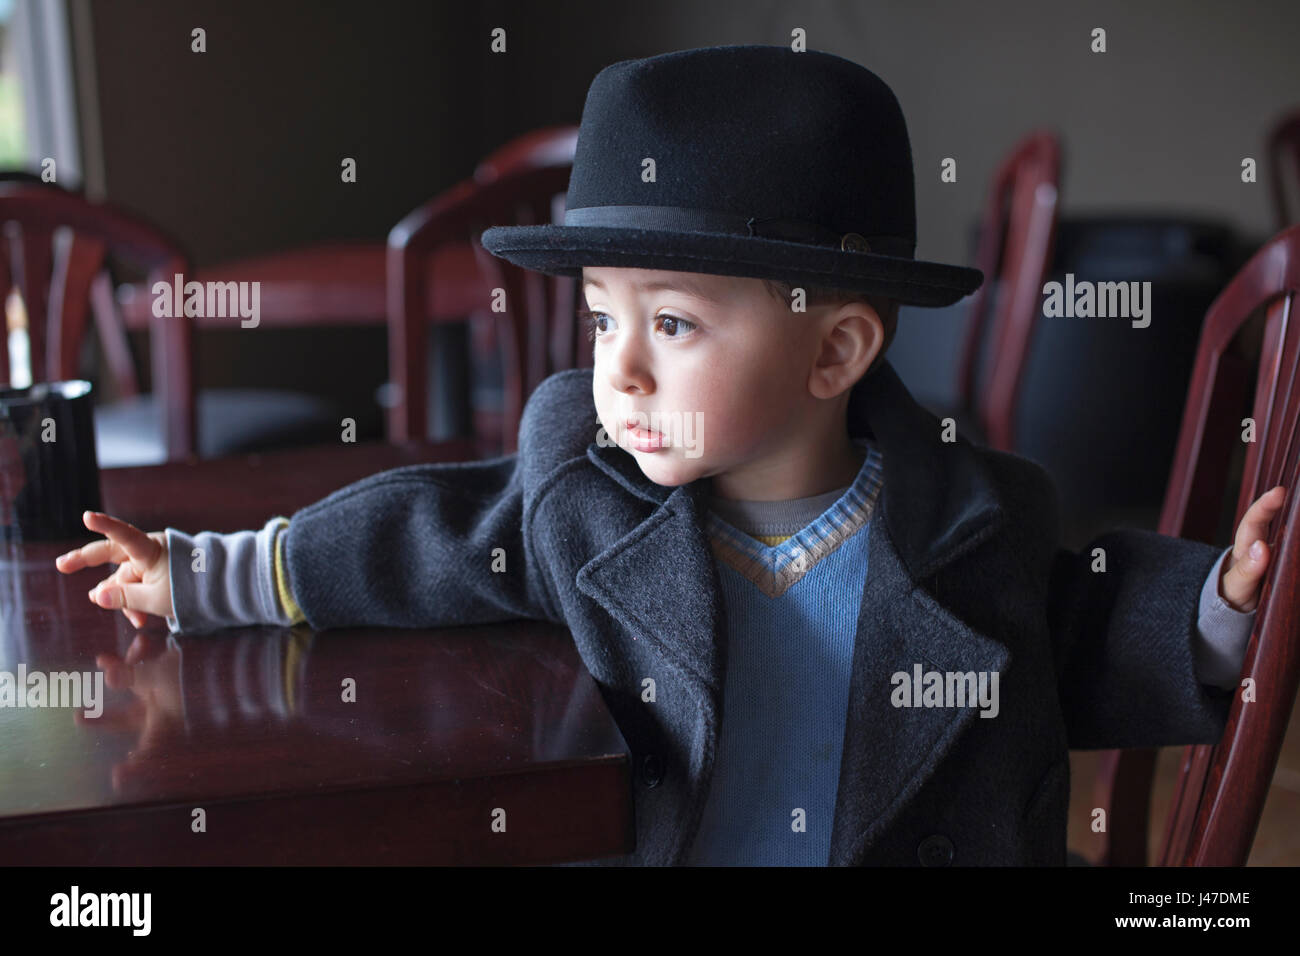 Cute mixed race Asian Caucasian little boy wearing a blue sweater and gray pea-coat with a black fedora looks out - Stock Image